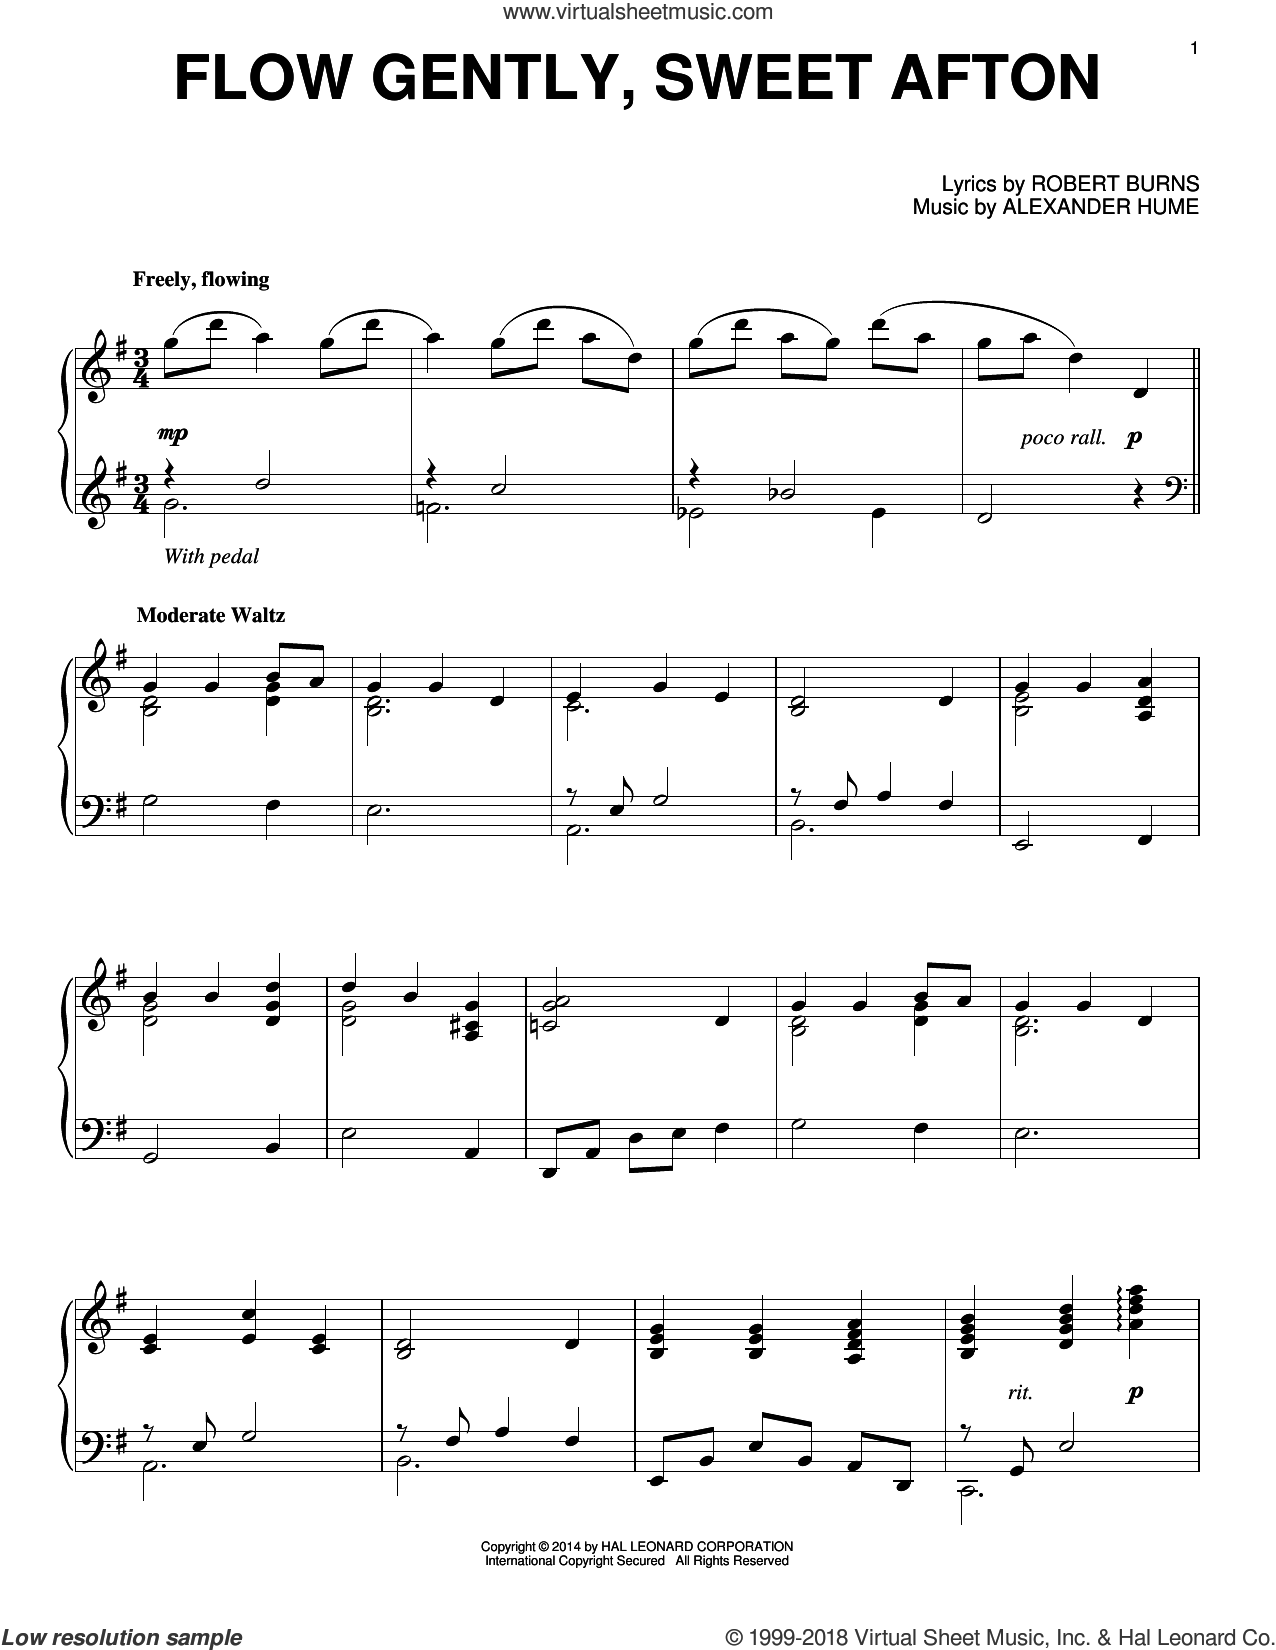 Flow Gently, Sweet Afton sheet music for piano solo by Robert Burns and Alexander Hume, intermediate